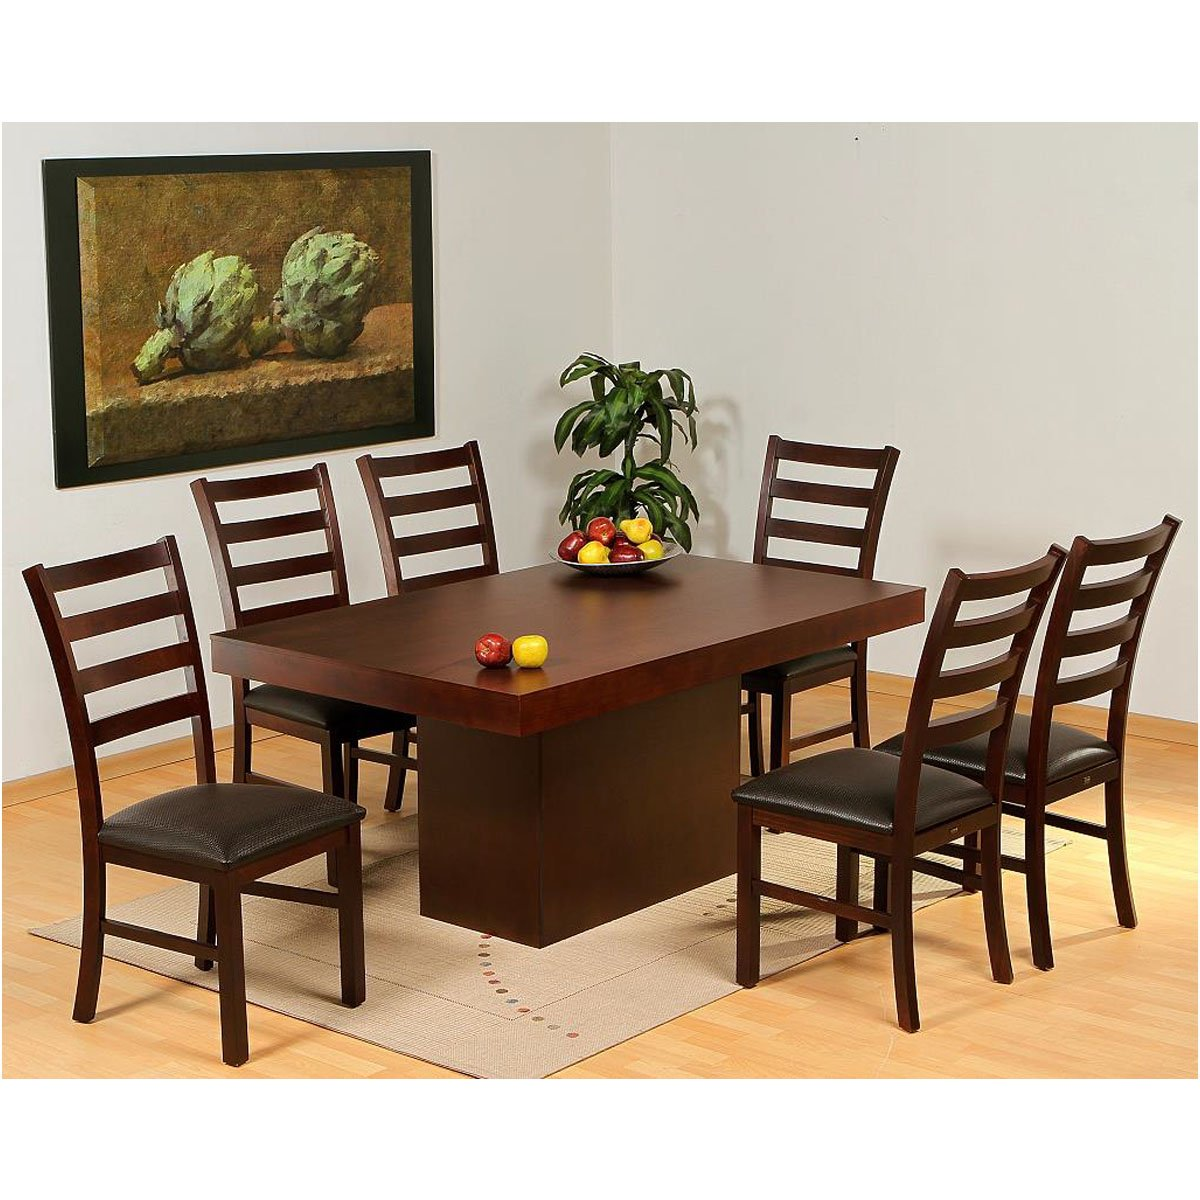 Comedor par s plus new challenge sears com mx me entiende for Ofertas comedores paris